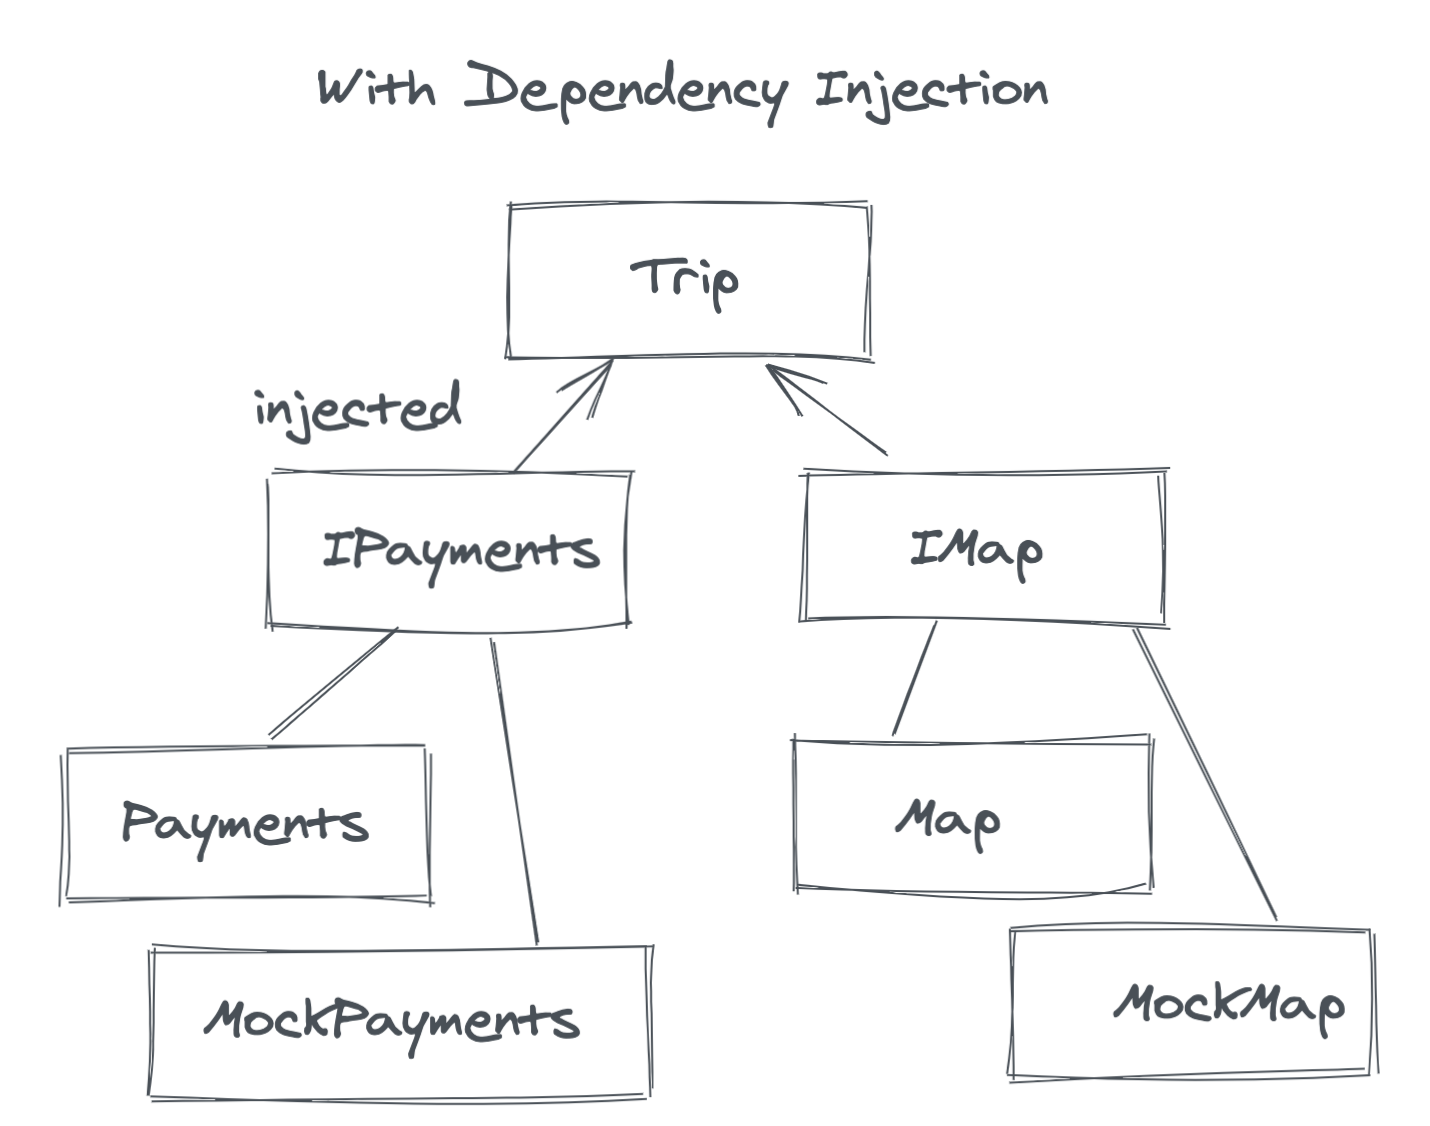 Dependency Injection in iOS and Android Apps